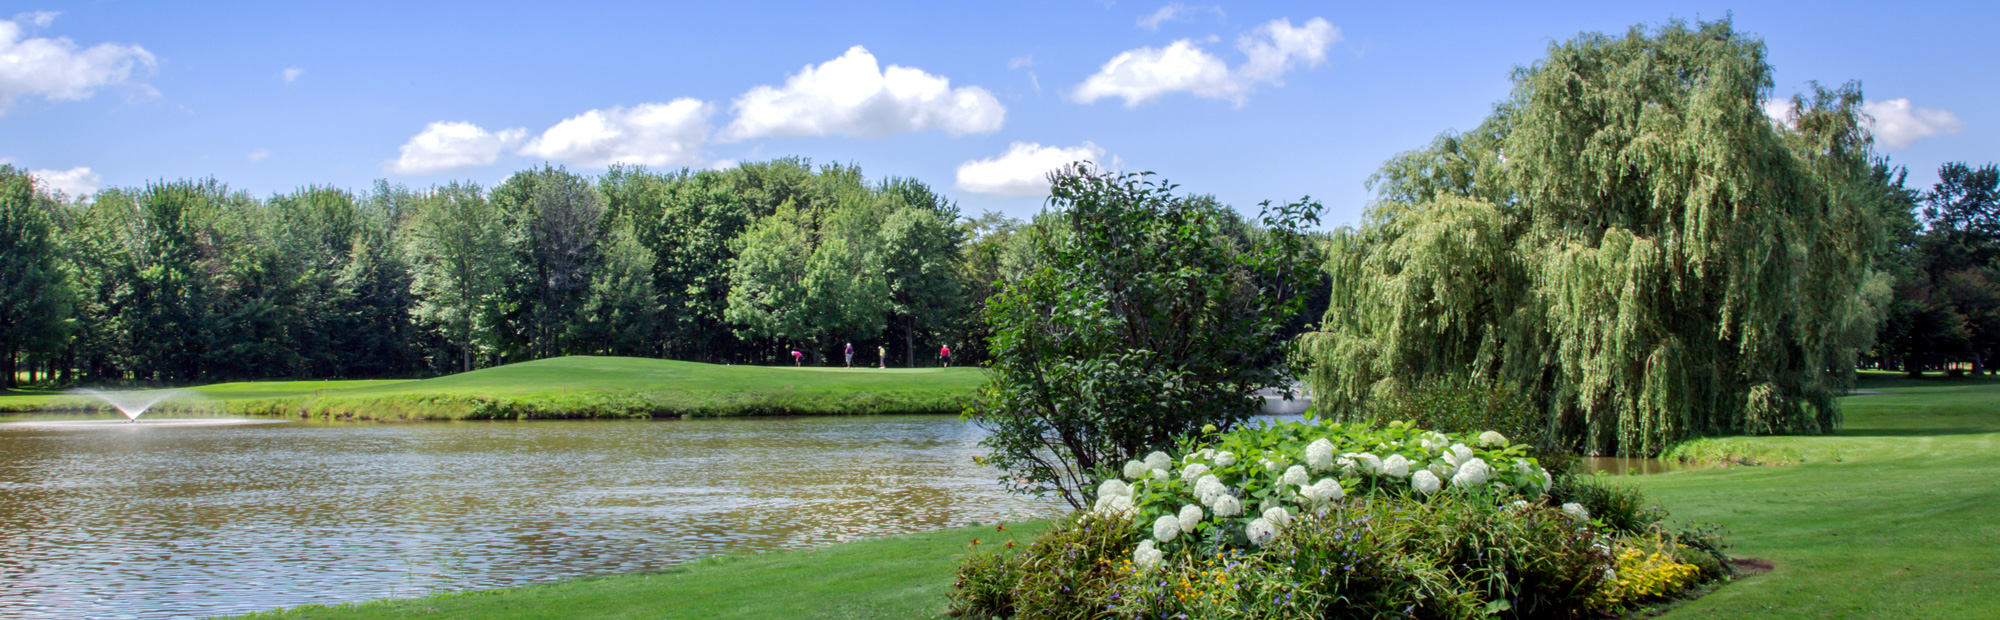 Club-de-golf-de-la-Valle-du-Richelieu9